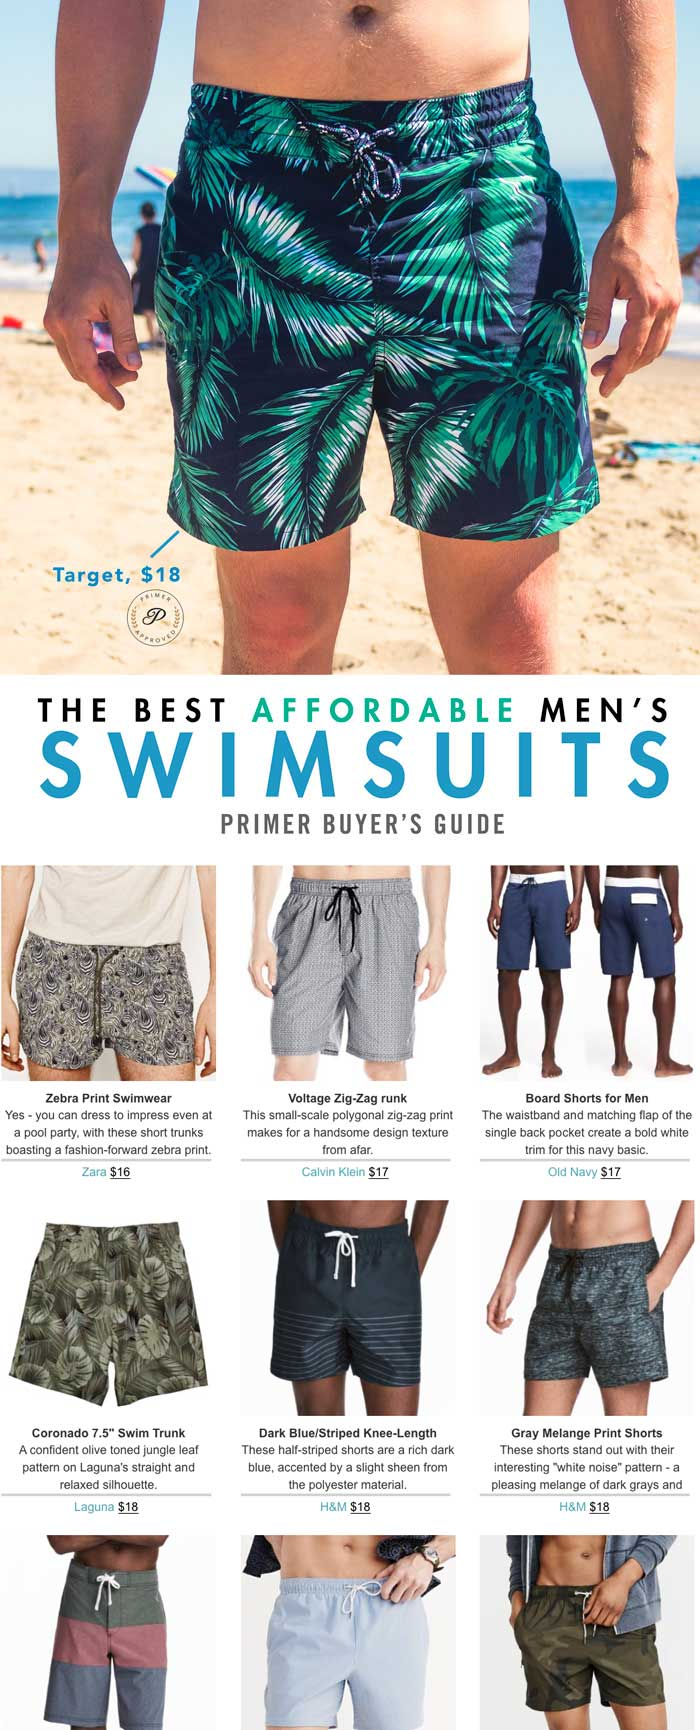 f958c03724 The Best Affordable Men's Swim Trunks | Primer